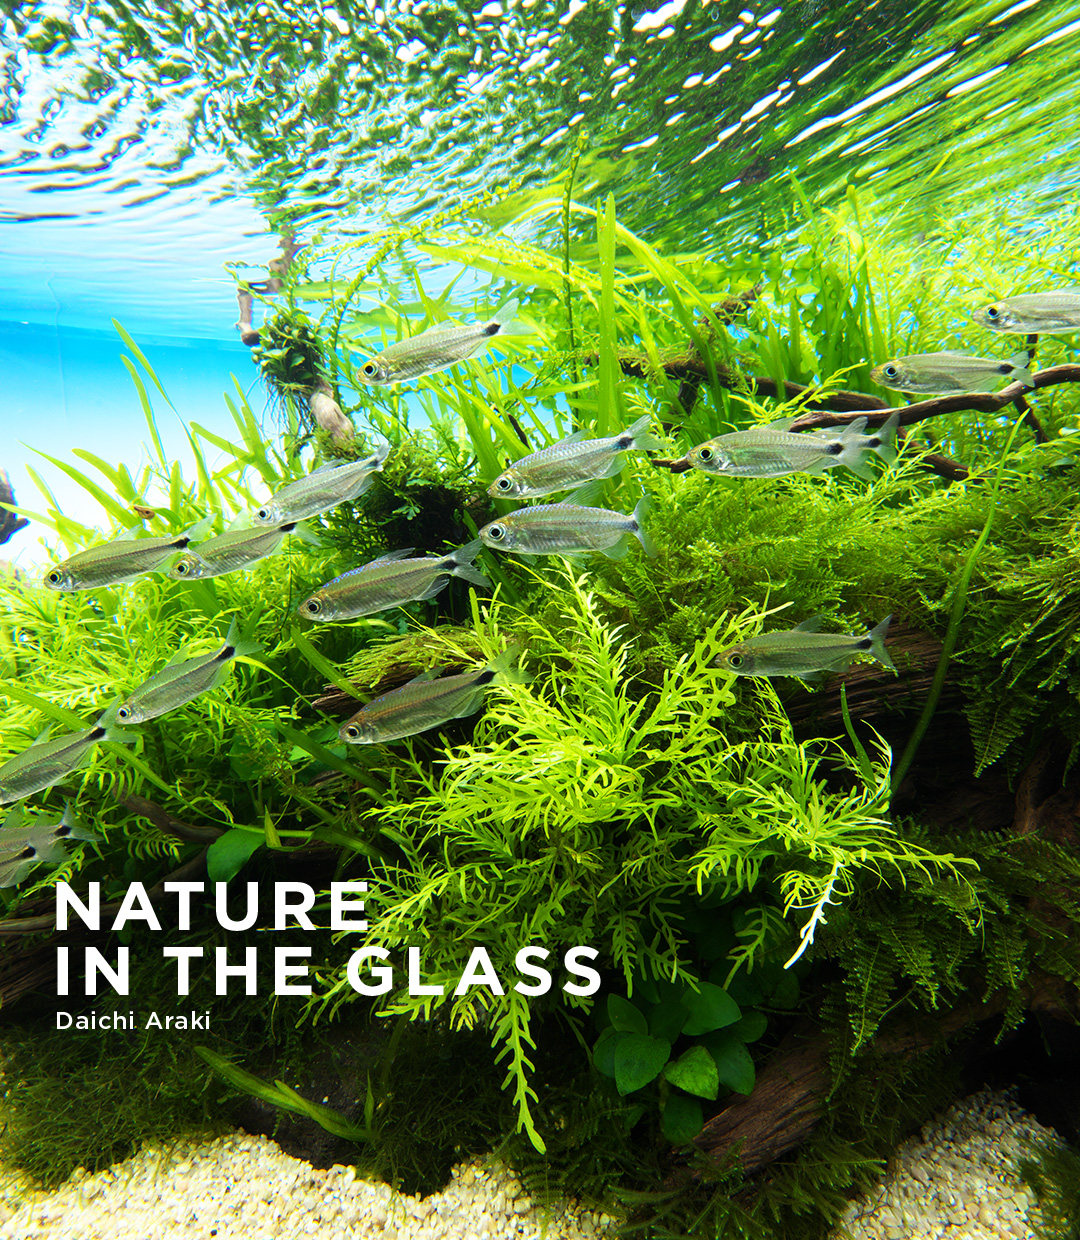 NATURE IN THE GLASS 'Nestling up to an old tree'